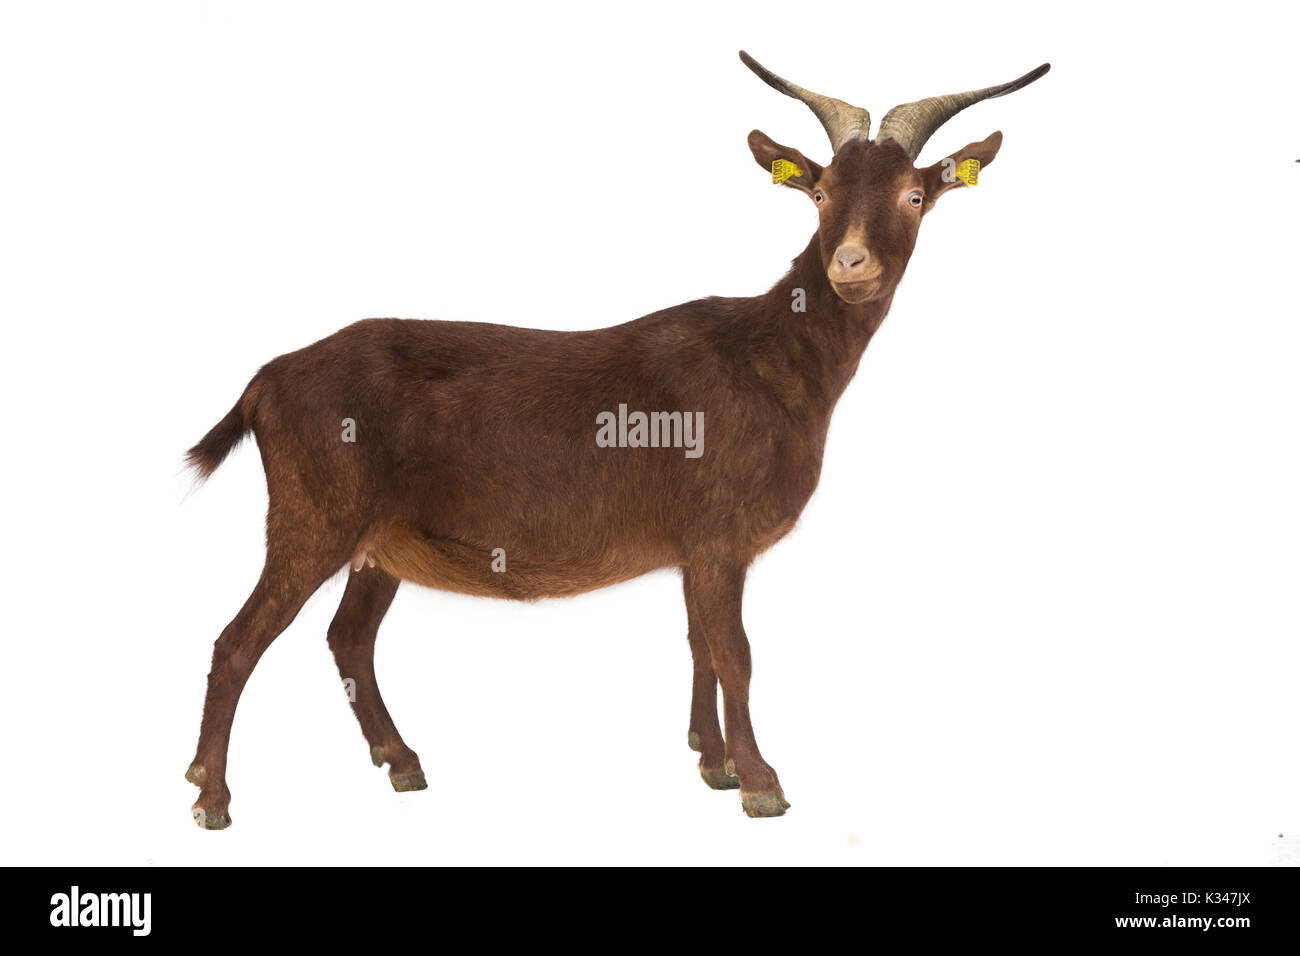 French breed, goat from France: Rove goat, profile, can be cut out. Rove goat with horns and a bell around its neck, outlined. - Stock Image